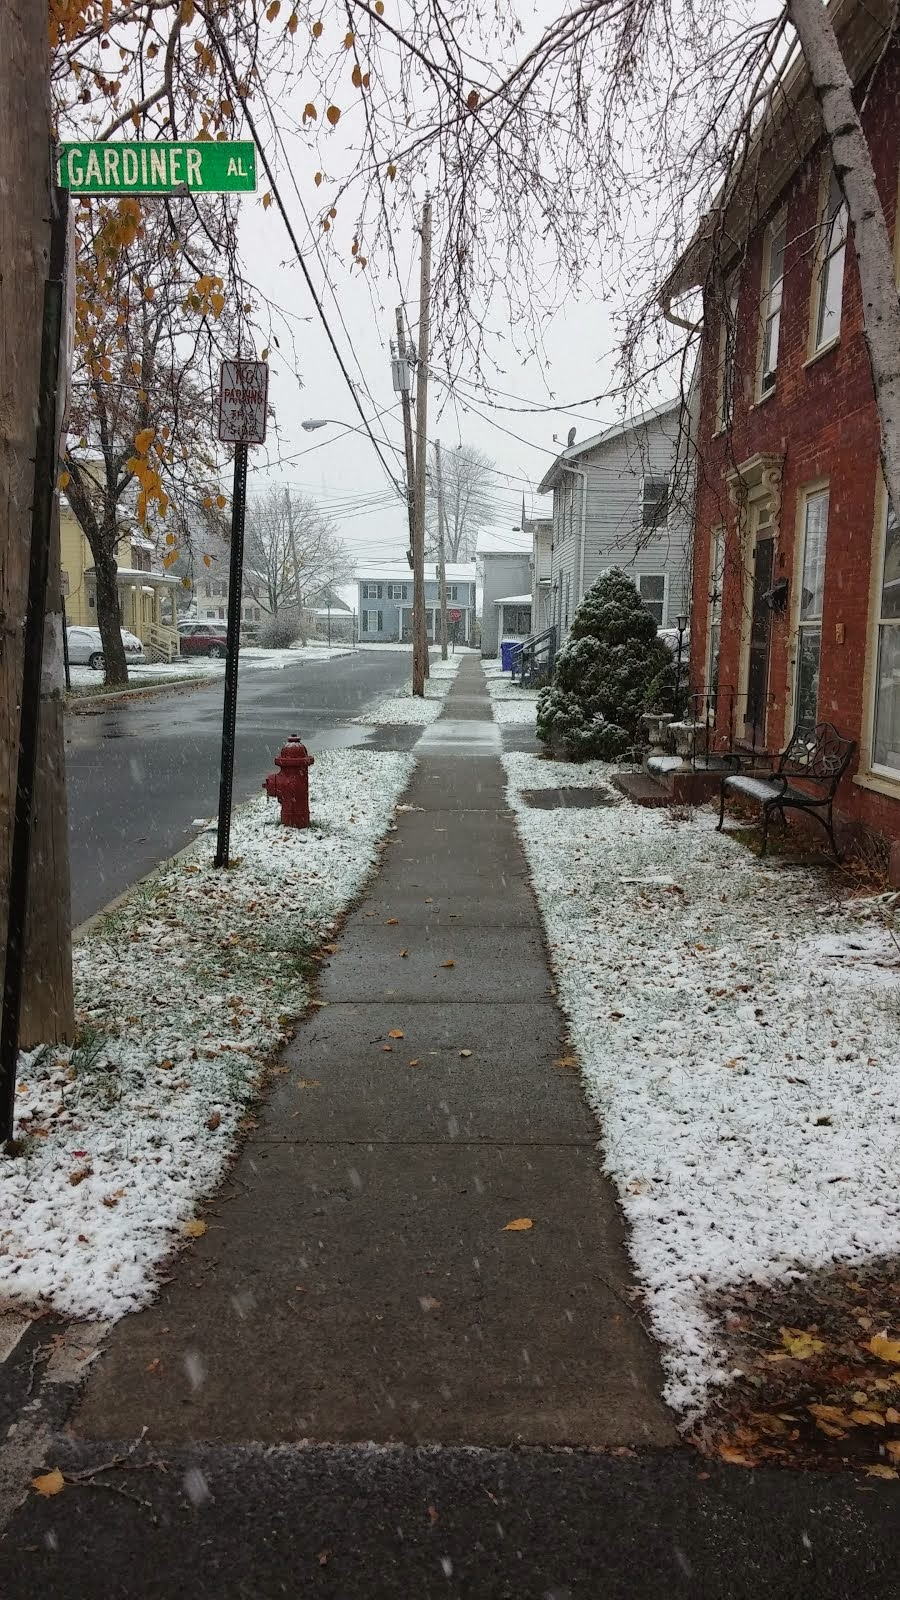 Snow in front of 46 King St., Brockport, NY 11/17/14